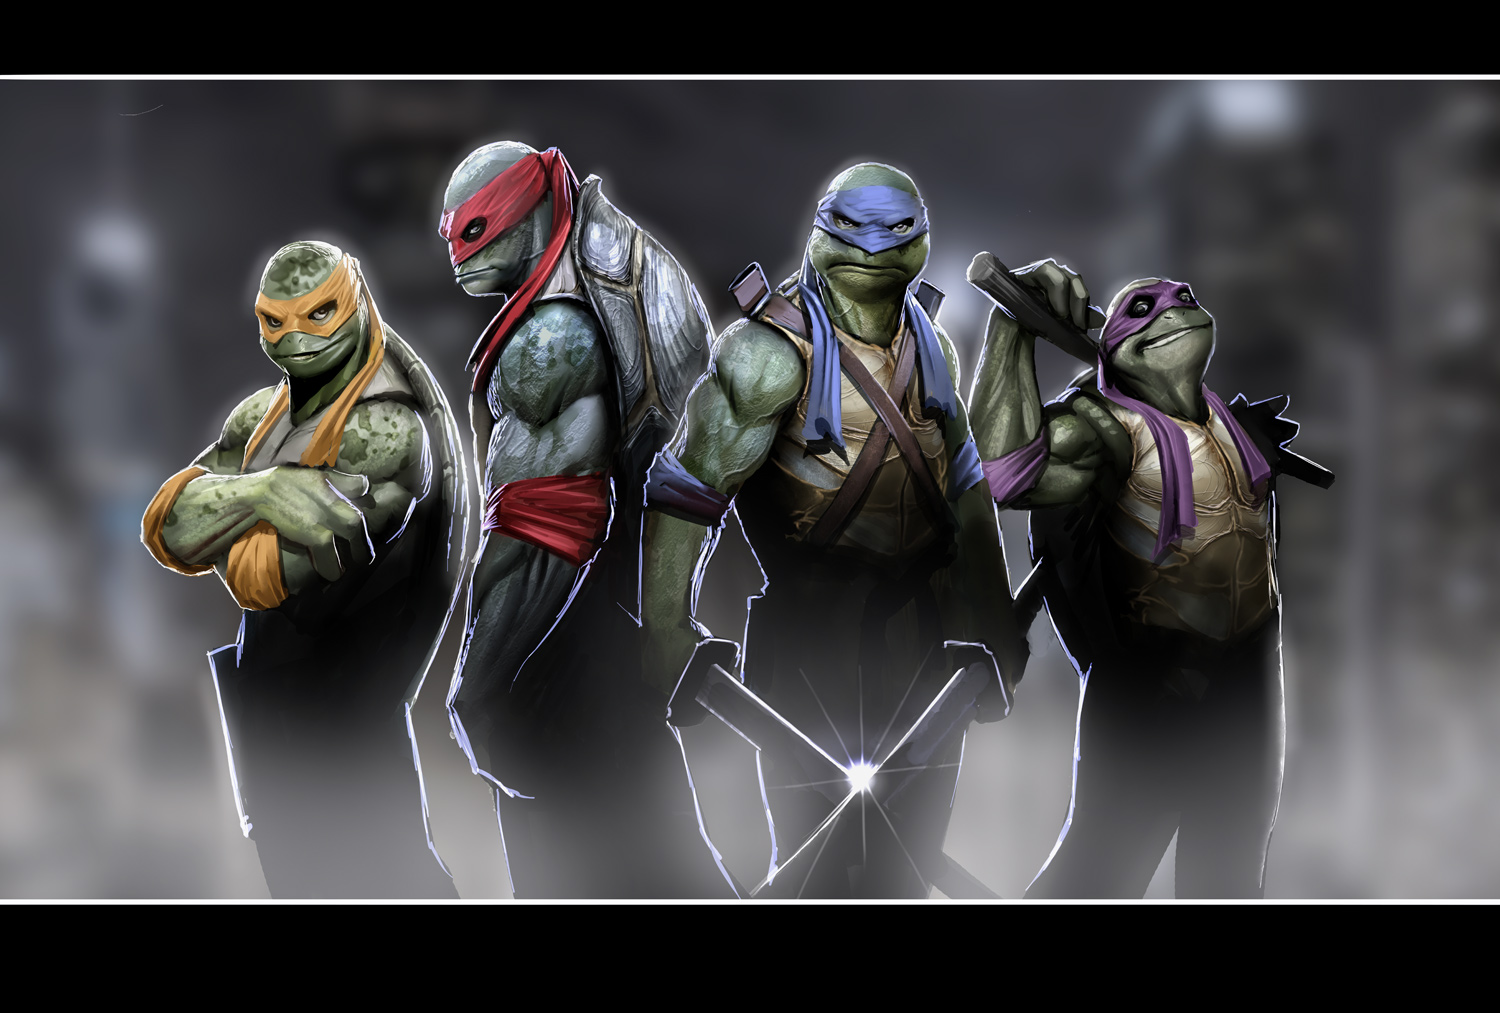 teenage_mutant_ninja_turtles.jpg